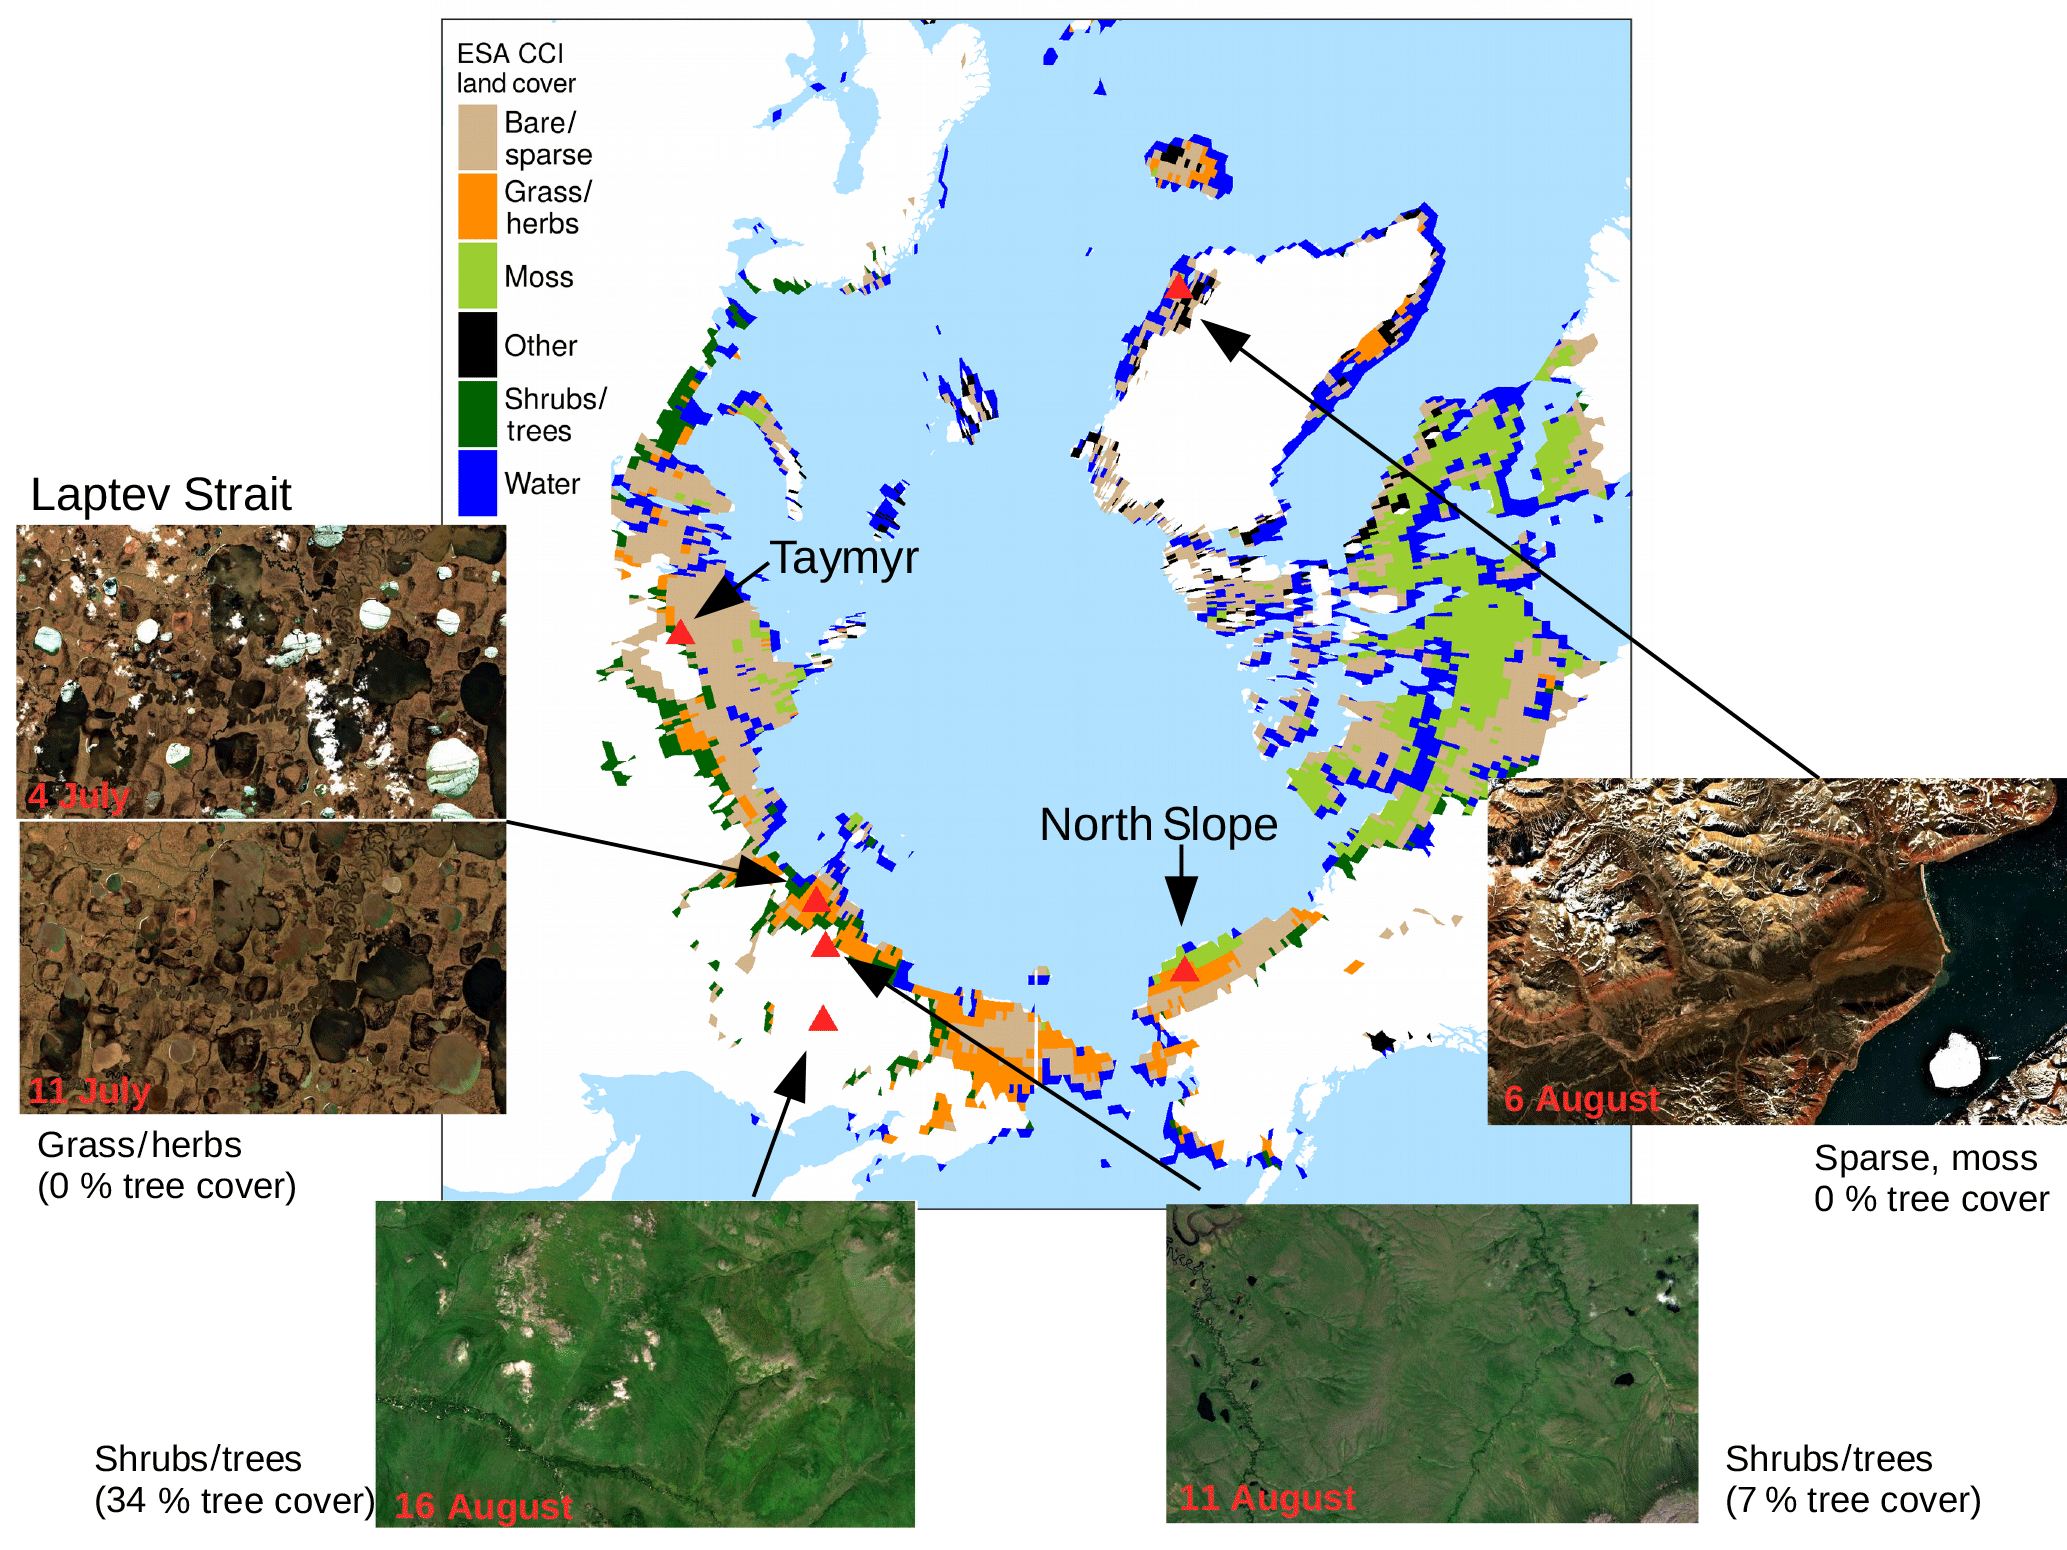 BG - Assessing the dynamics of vegetation productivity in ...